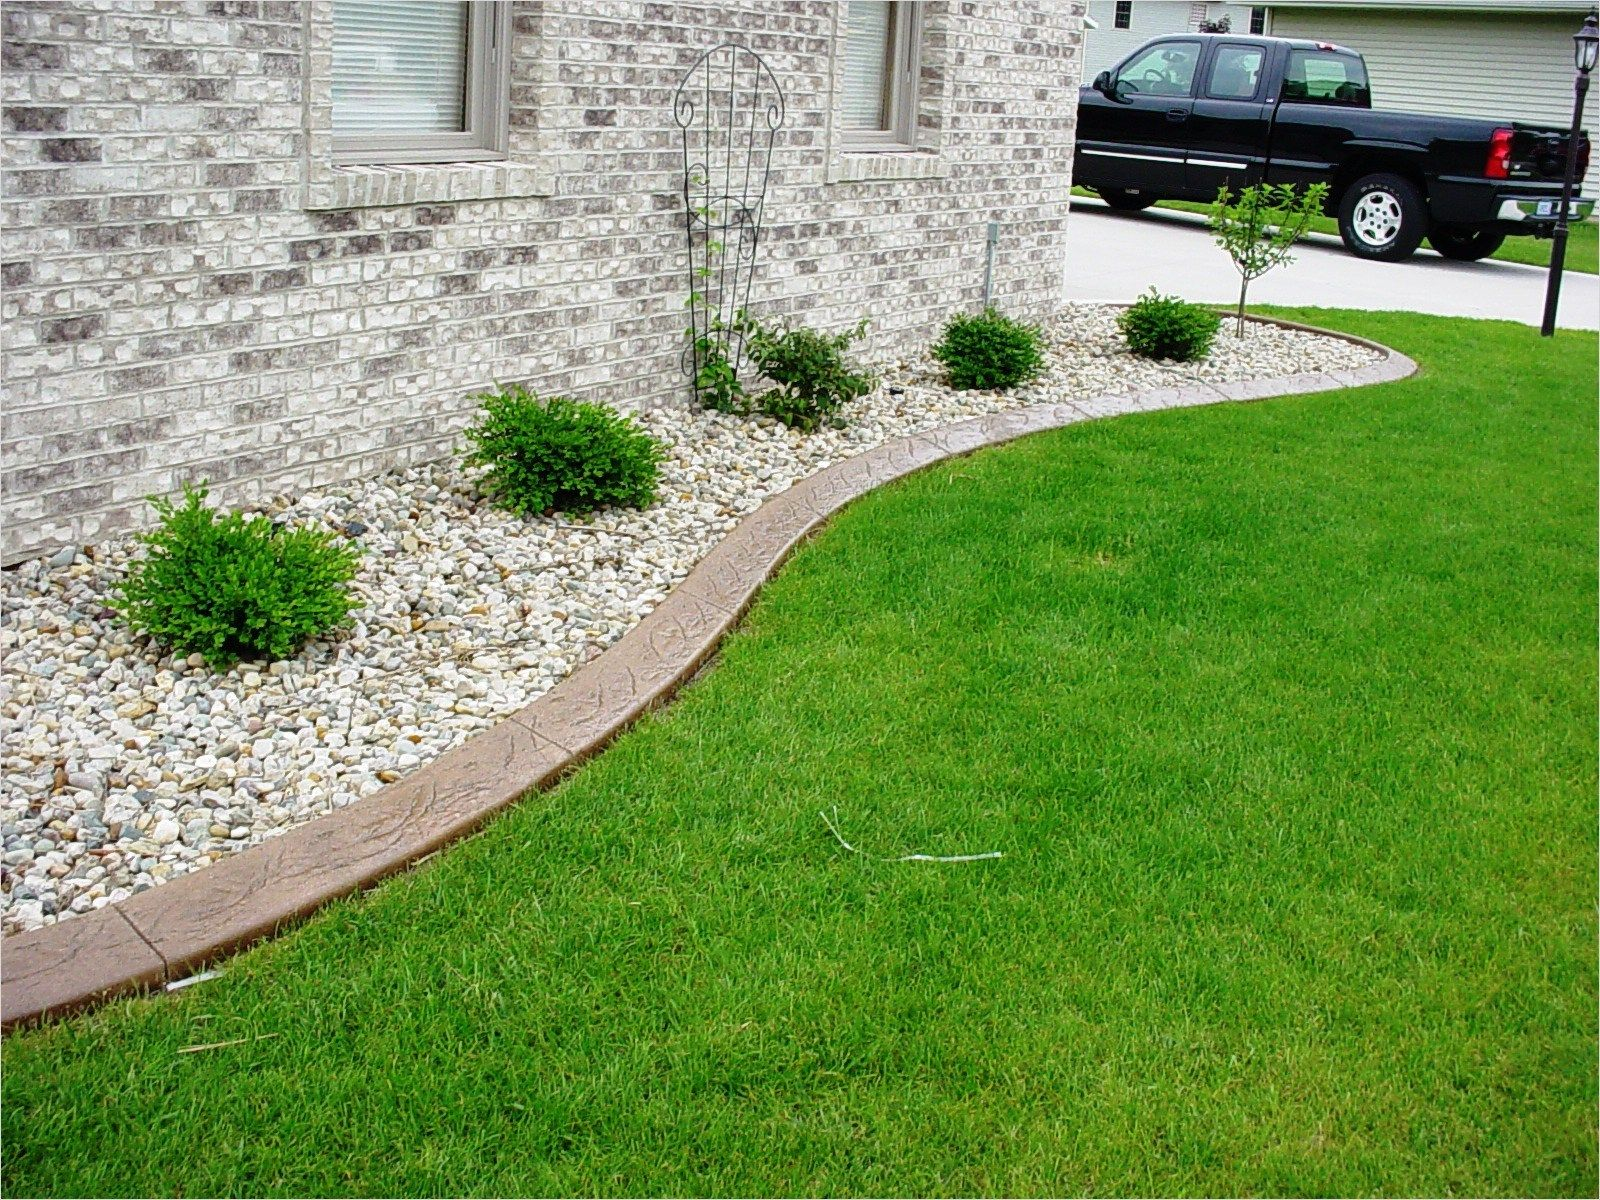 43 Perfect Gravel Landscaping Ideas That Will Make Your Home